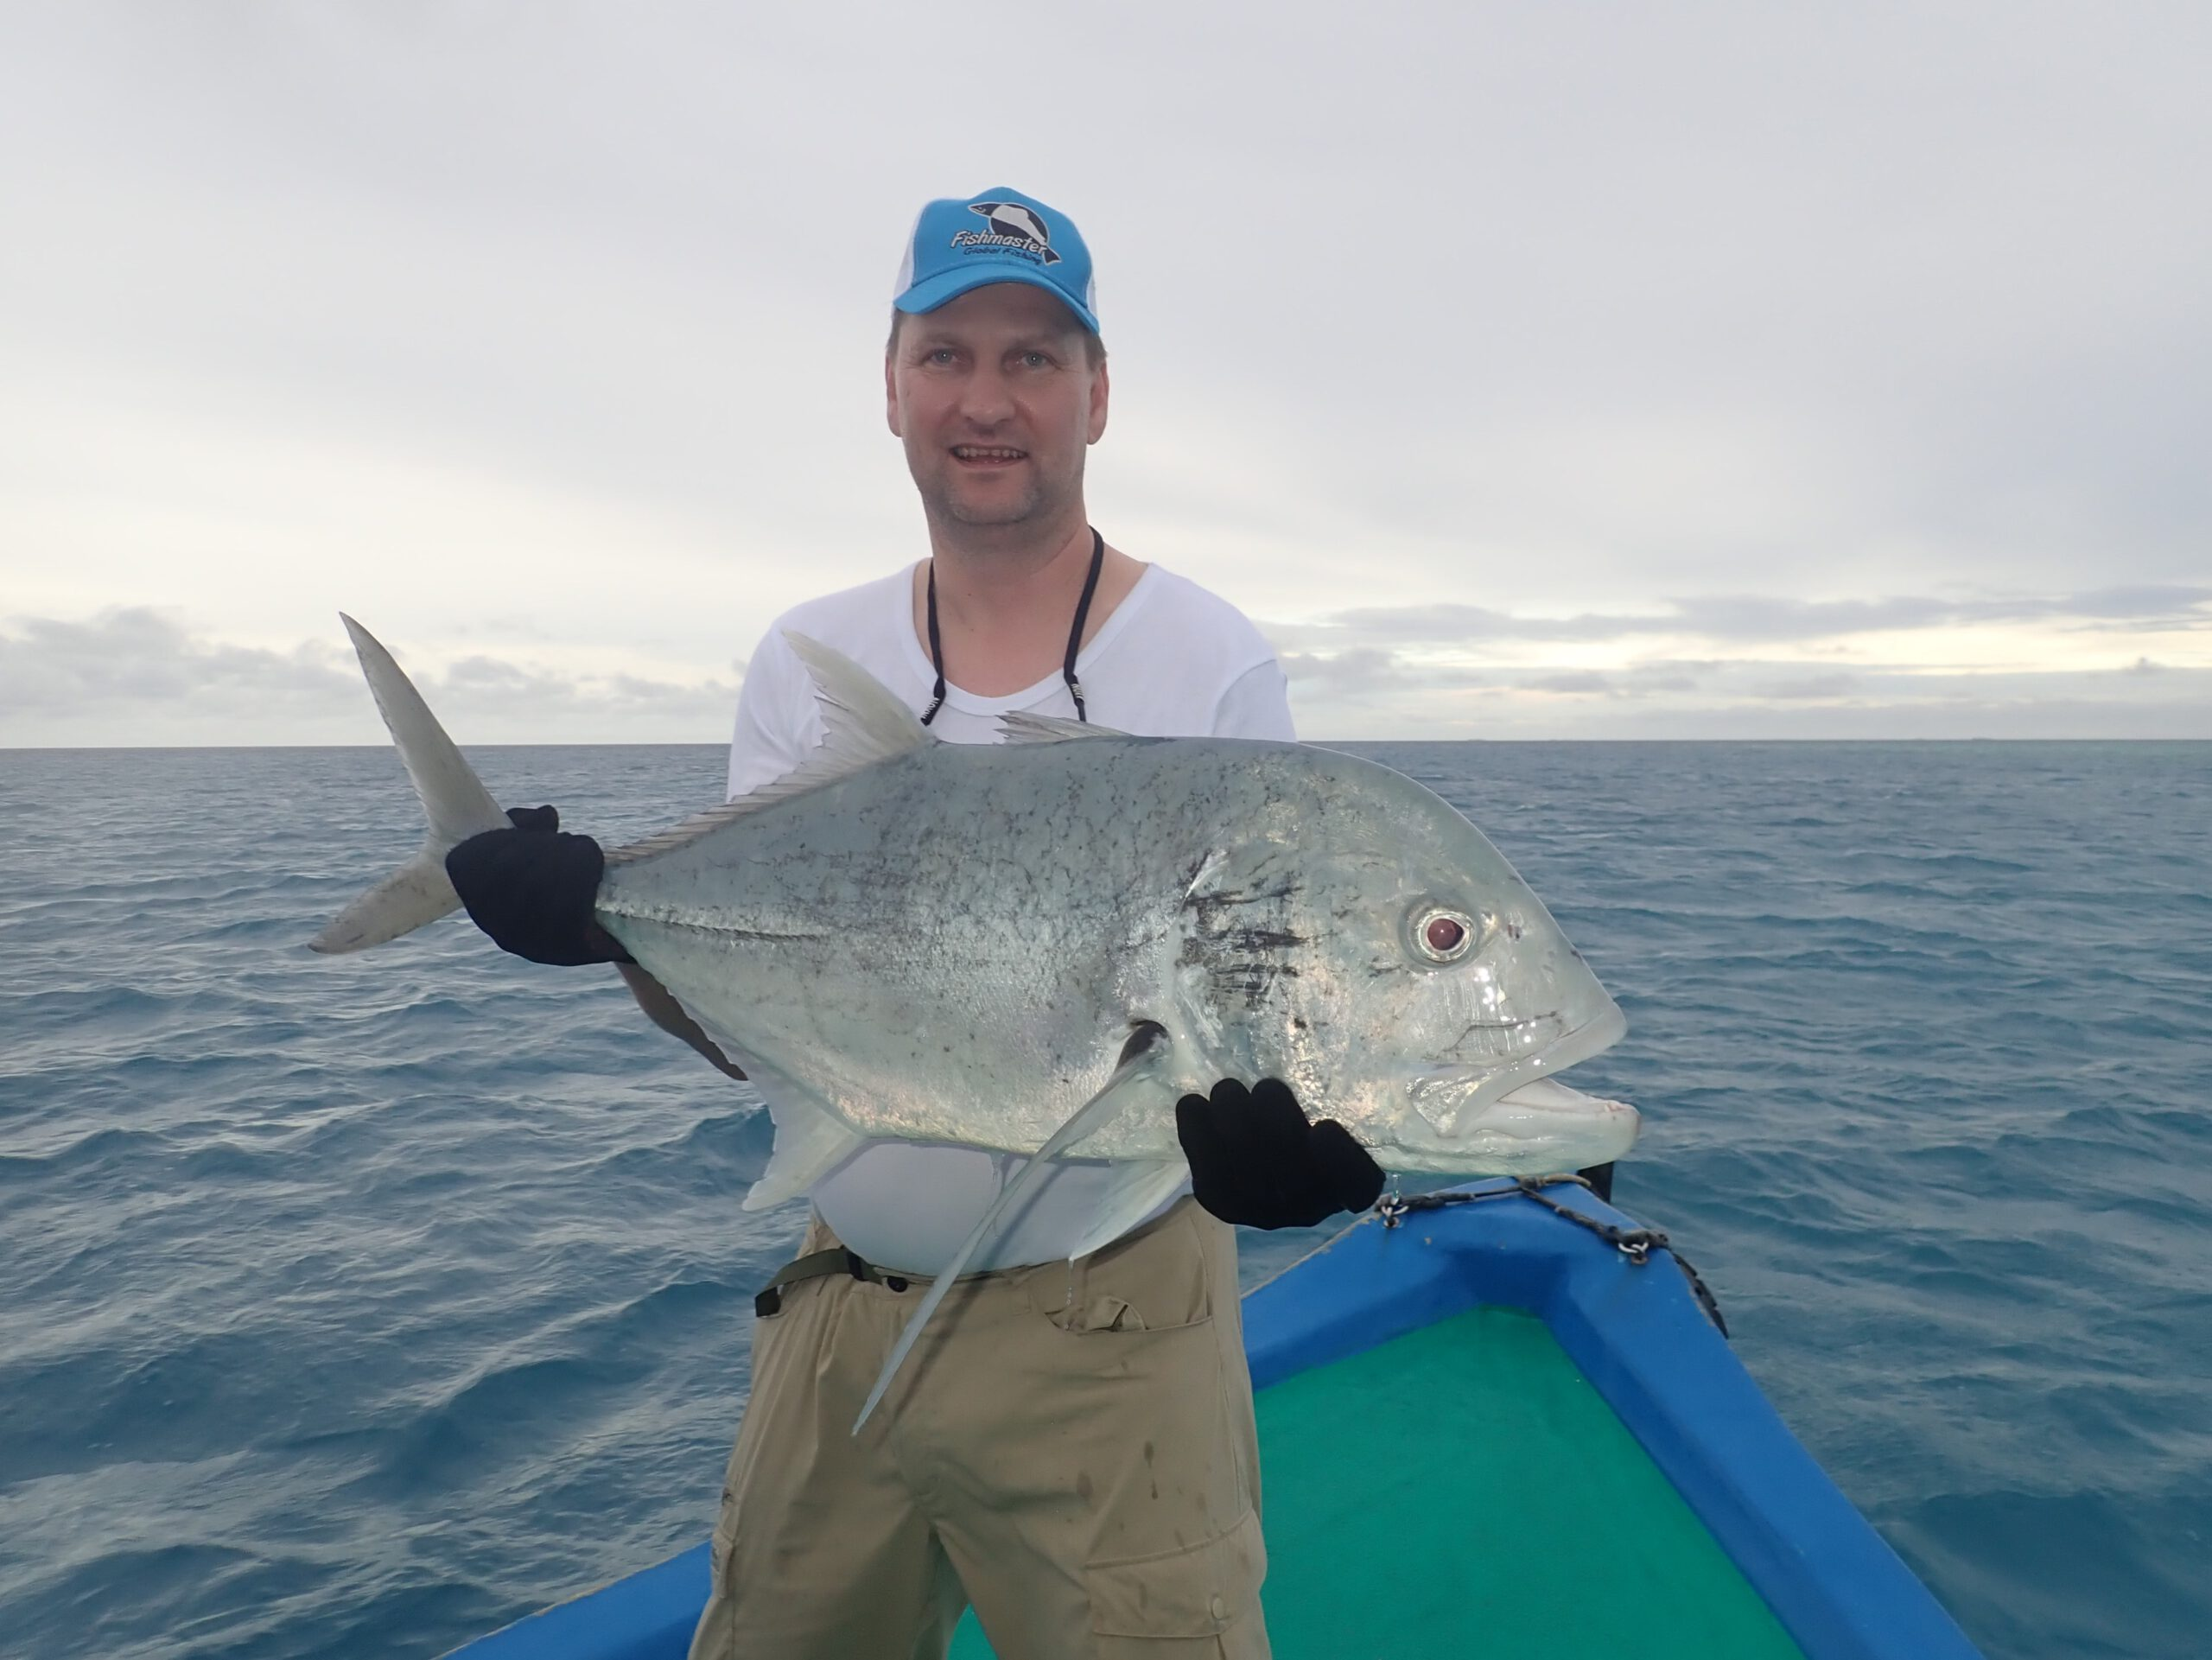 malediivit maldiverna maldives gt gianttrevally bluefintrevally perhokalastus flyfishing flugfiske fluefiske perhokalastusmatka kalastus kalastusmatka kalastusmatkat fishmaster globalfishing